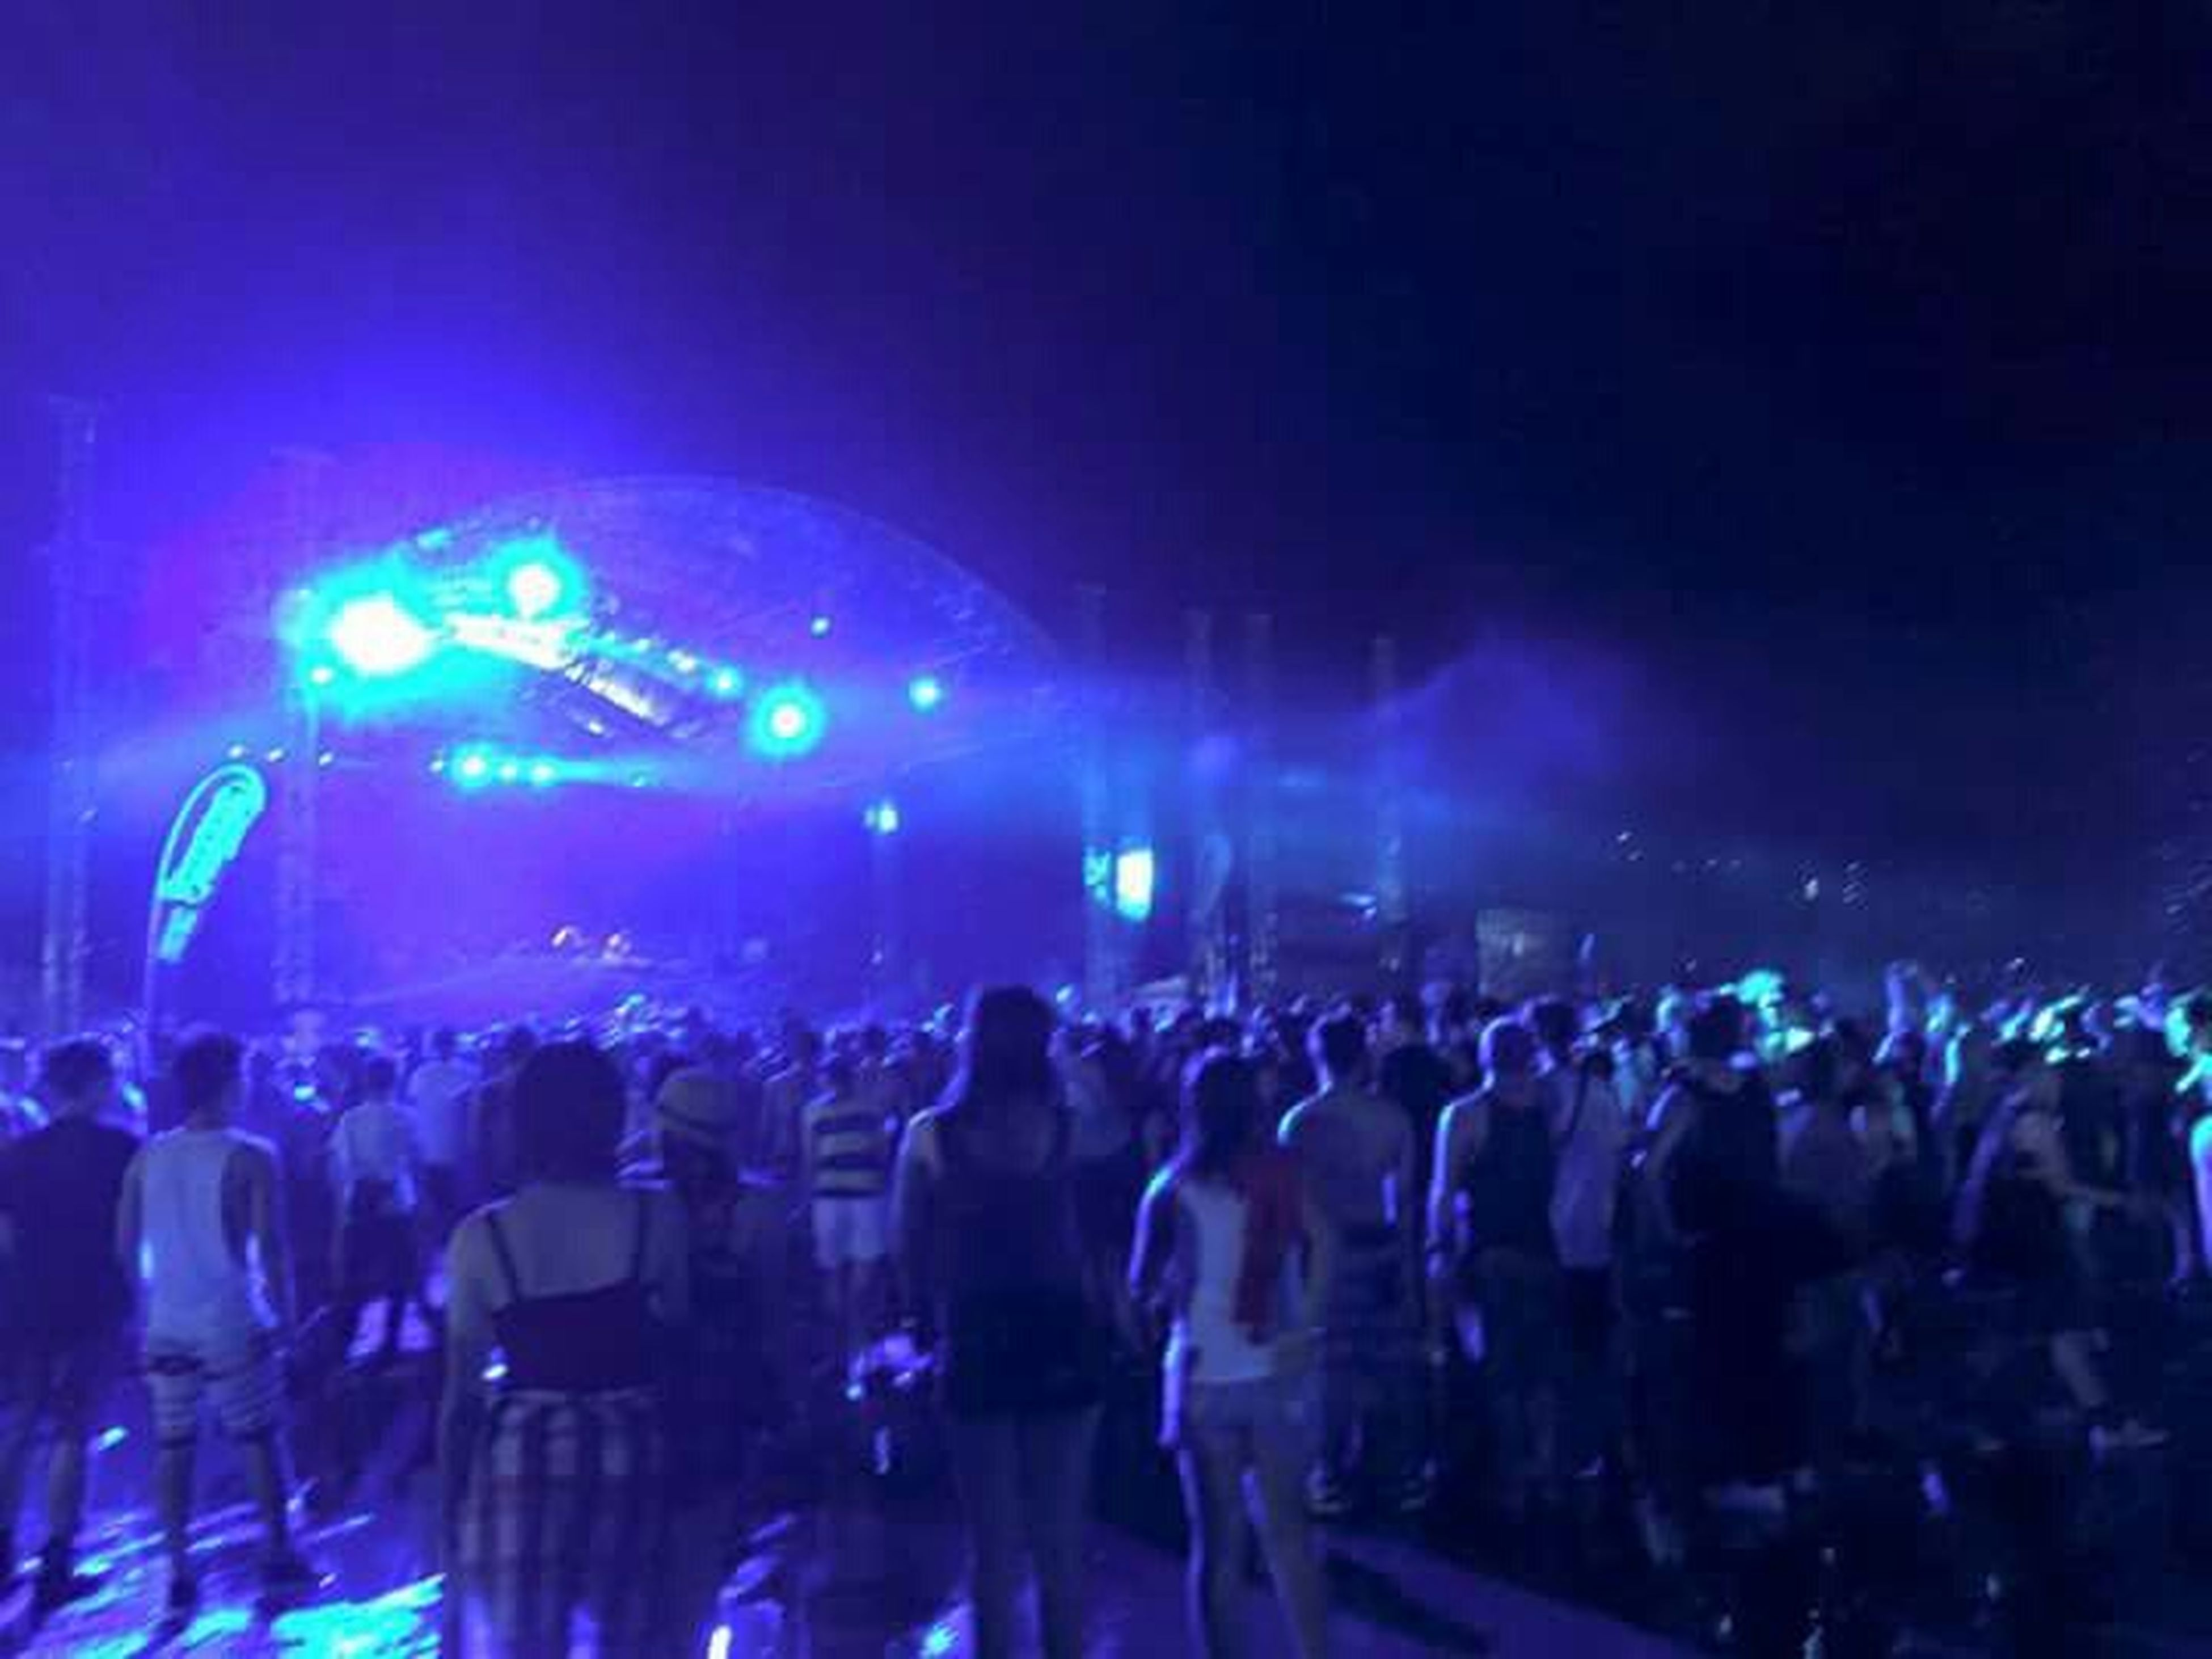 illuminated, large group of people, night, crowd, arts culture and entertainment, music, nightlife, men, lifestyles, person, enjoyment, leisure activity, performance, concert, music festival, event, stage - performance space, fun